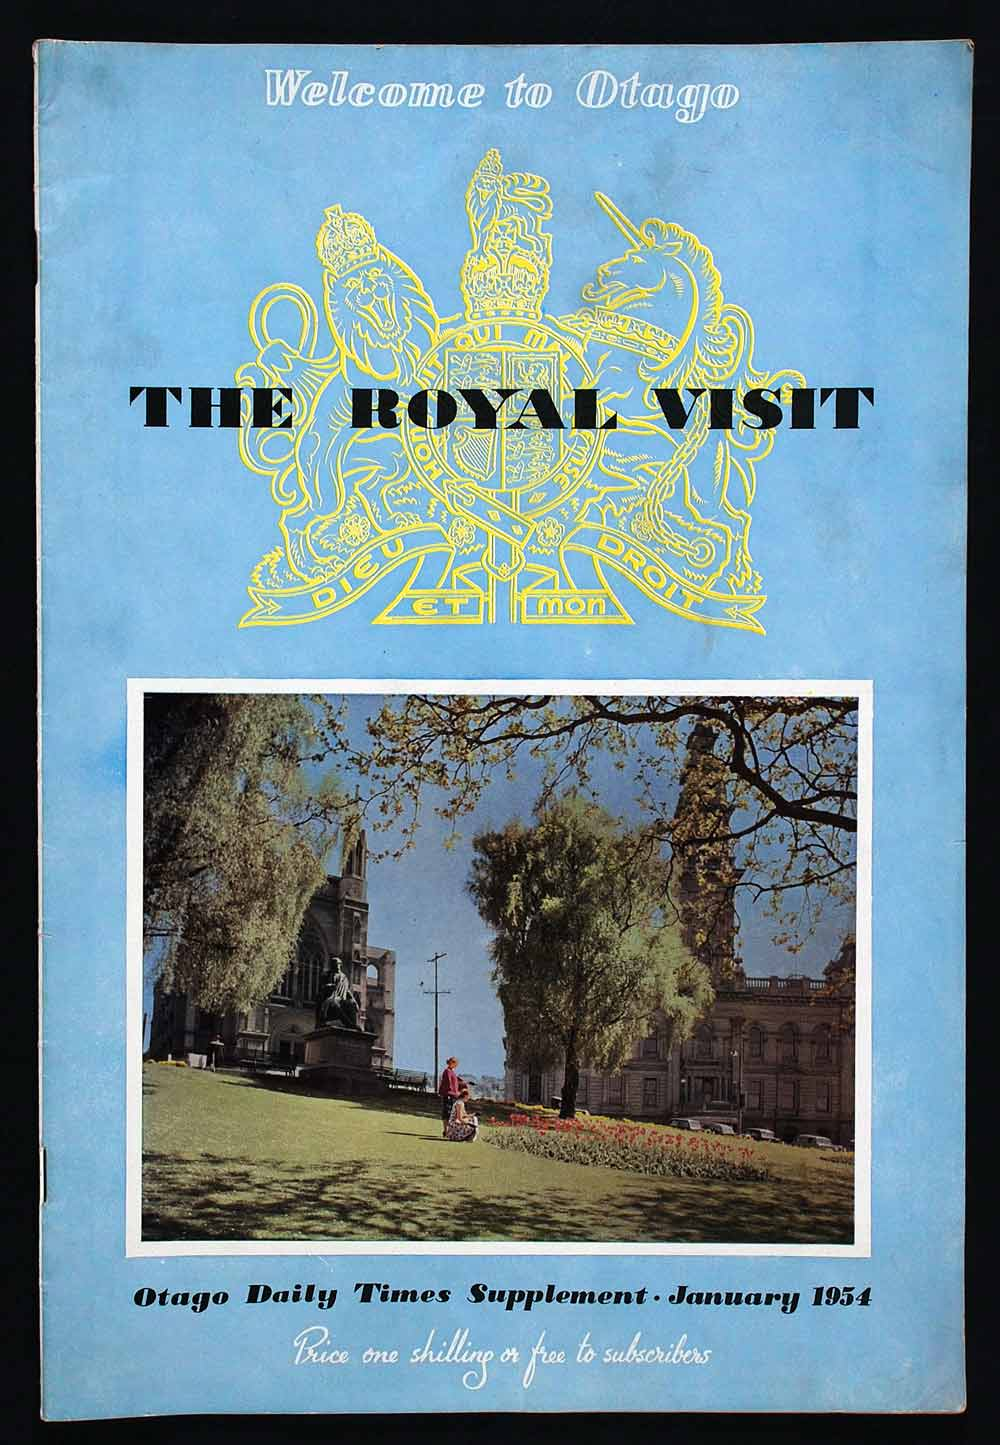 The royal visit; Otago Daily Times supplement, January 1954. Dunedin: Otago Daily Times, [1954].